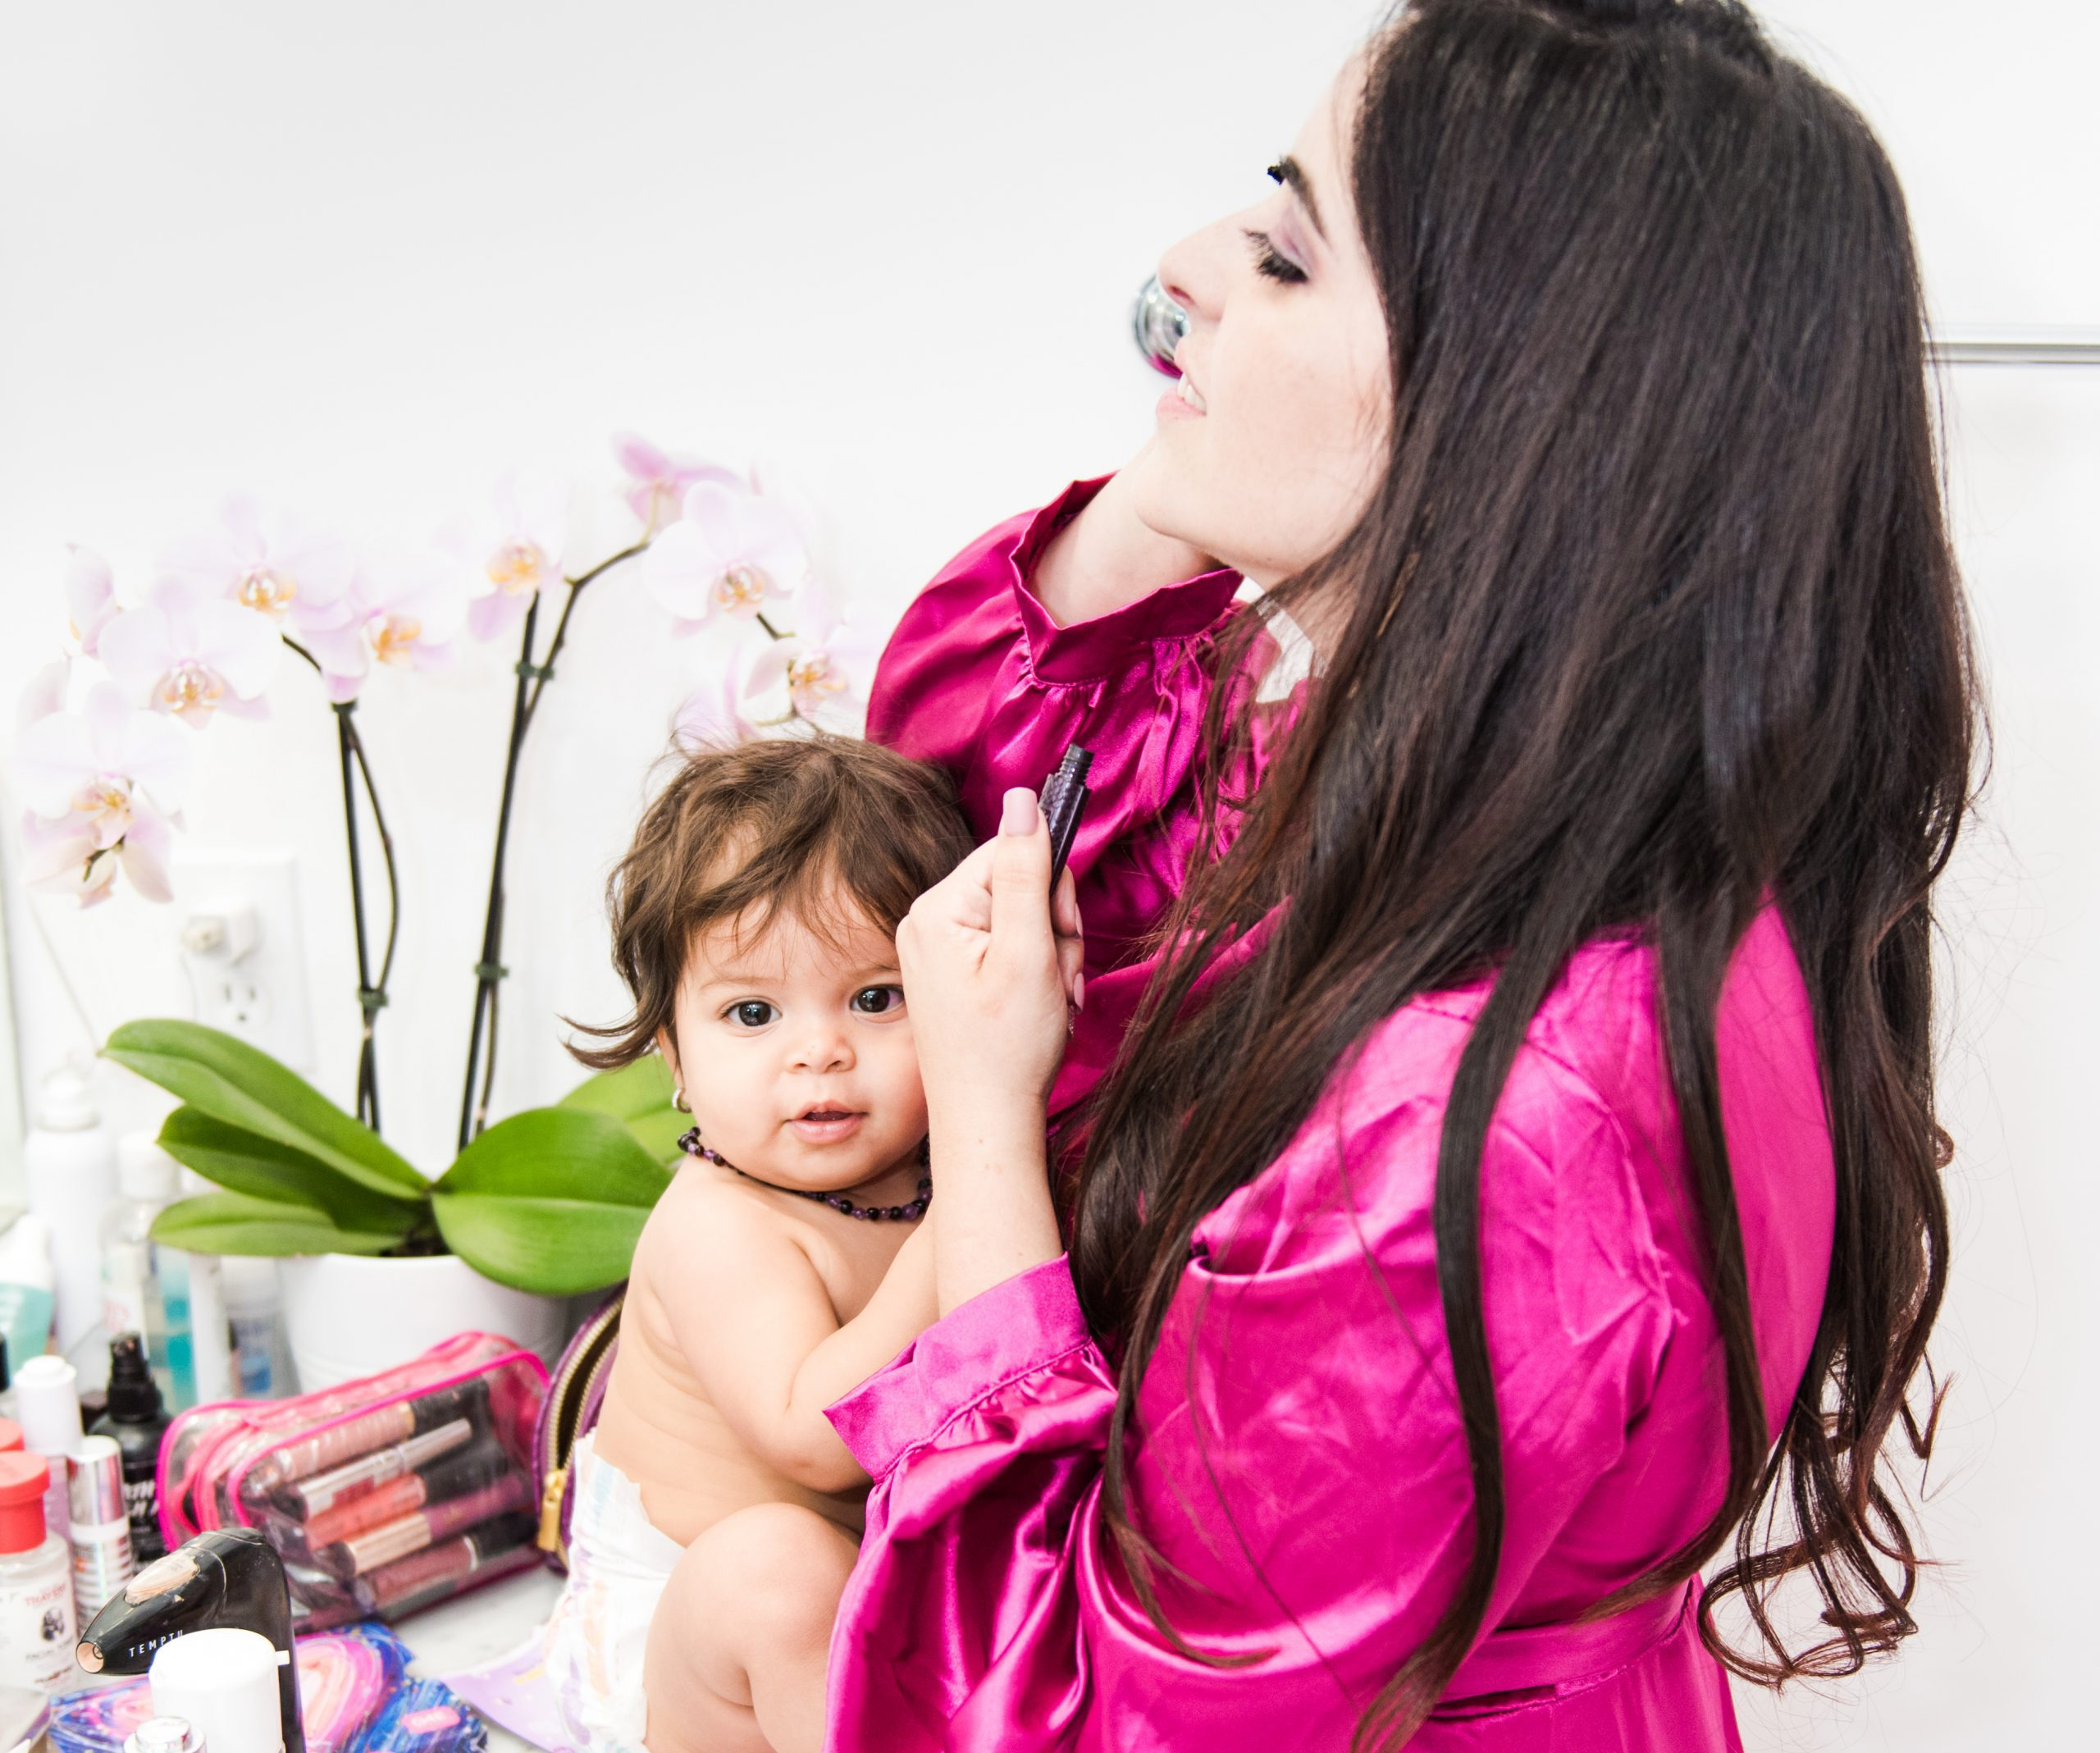 Mom Beauty: 5 Quick Tips to Simplify Your Routine Katy Taurel Contributor Miami Moms Blog